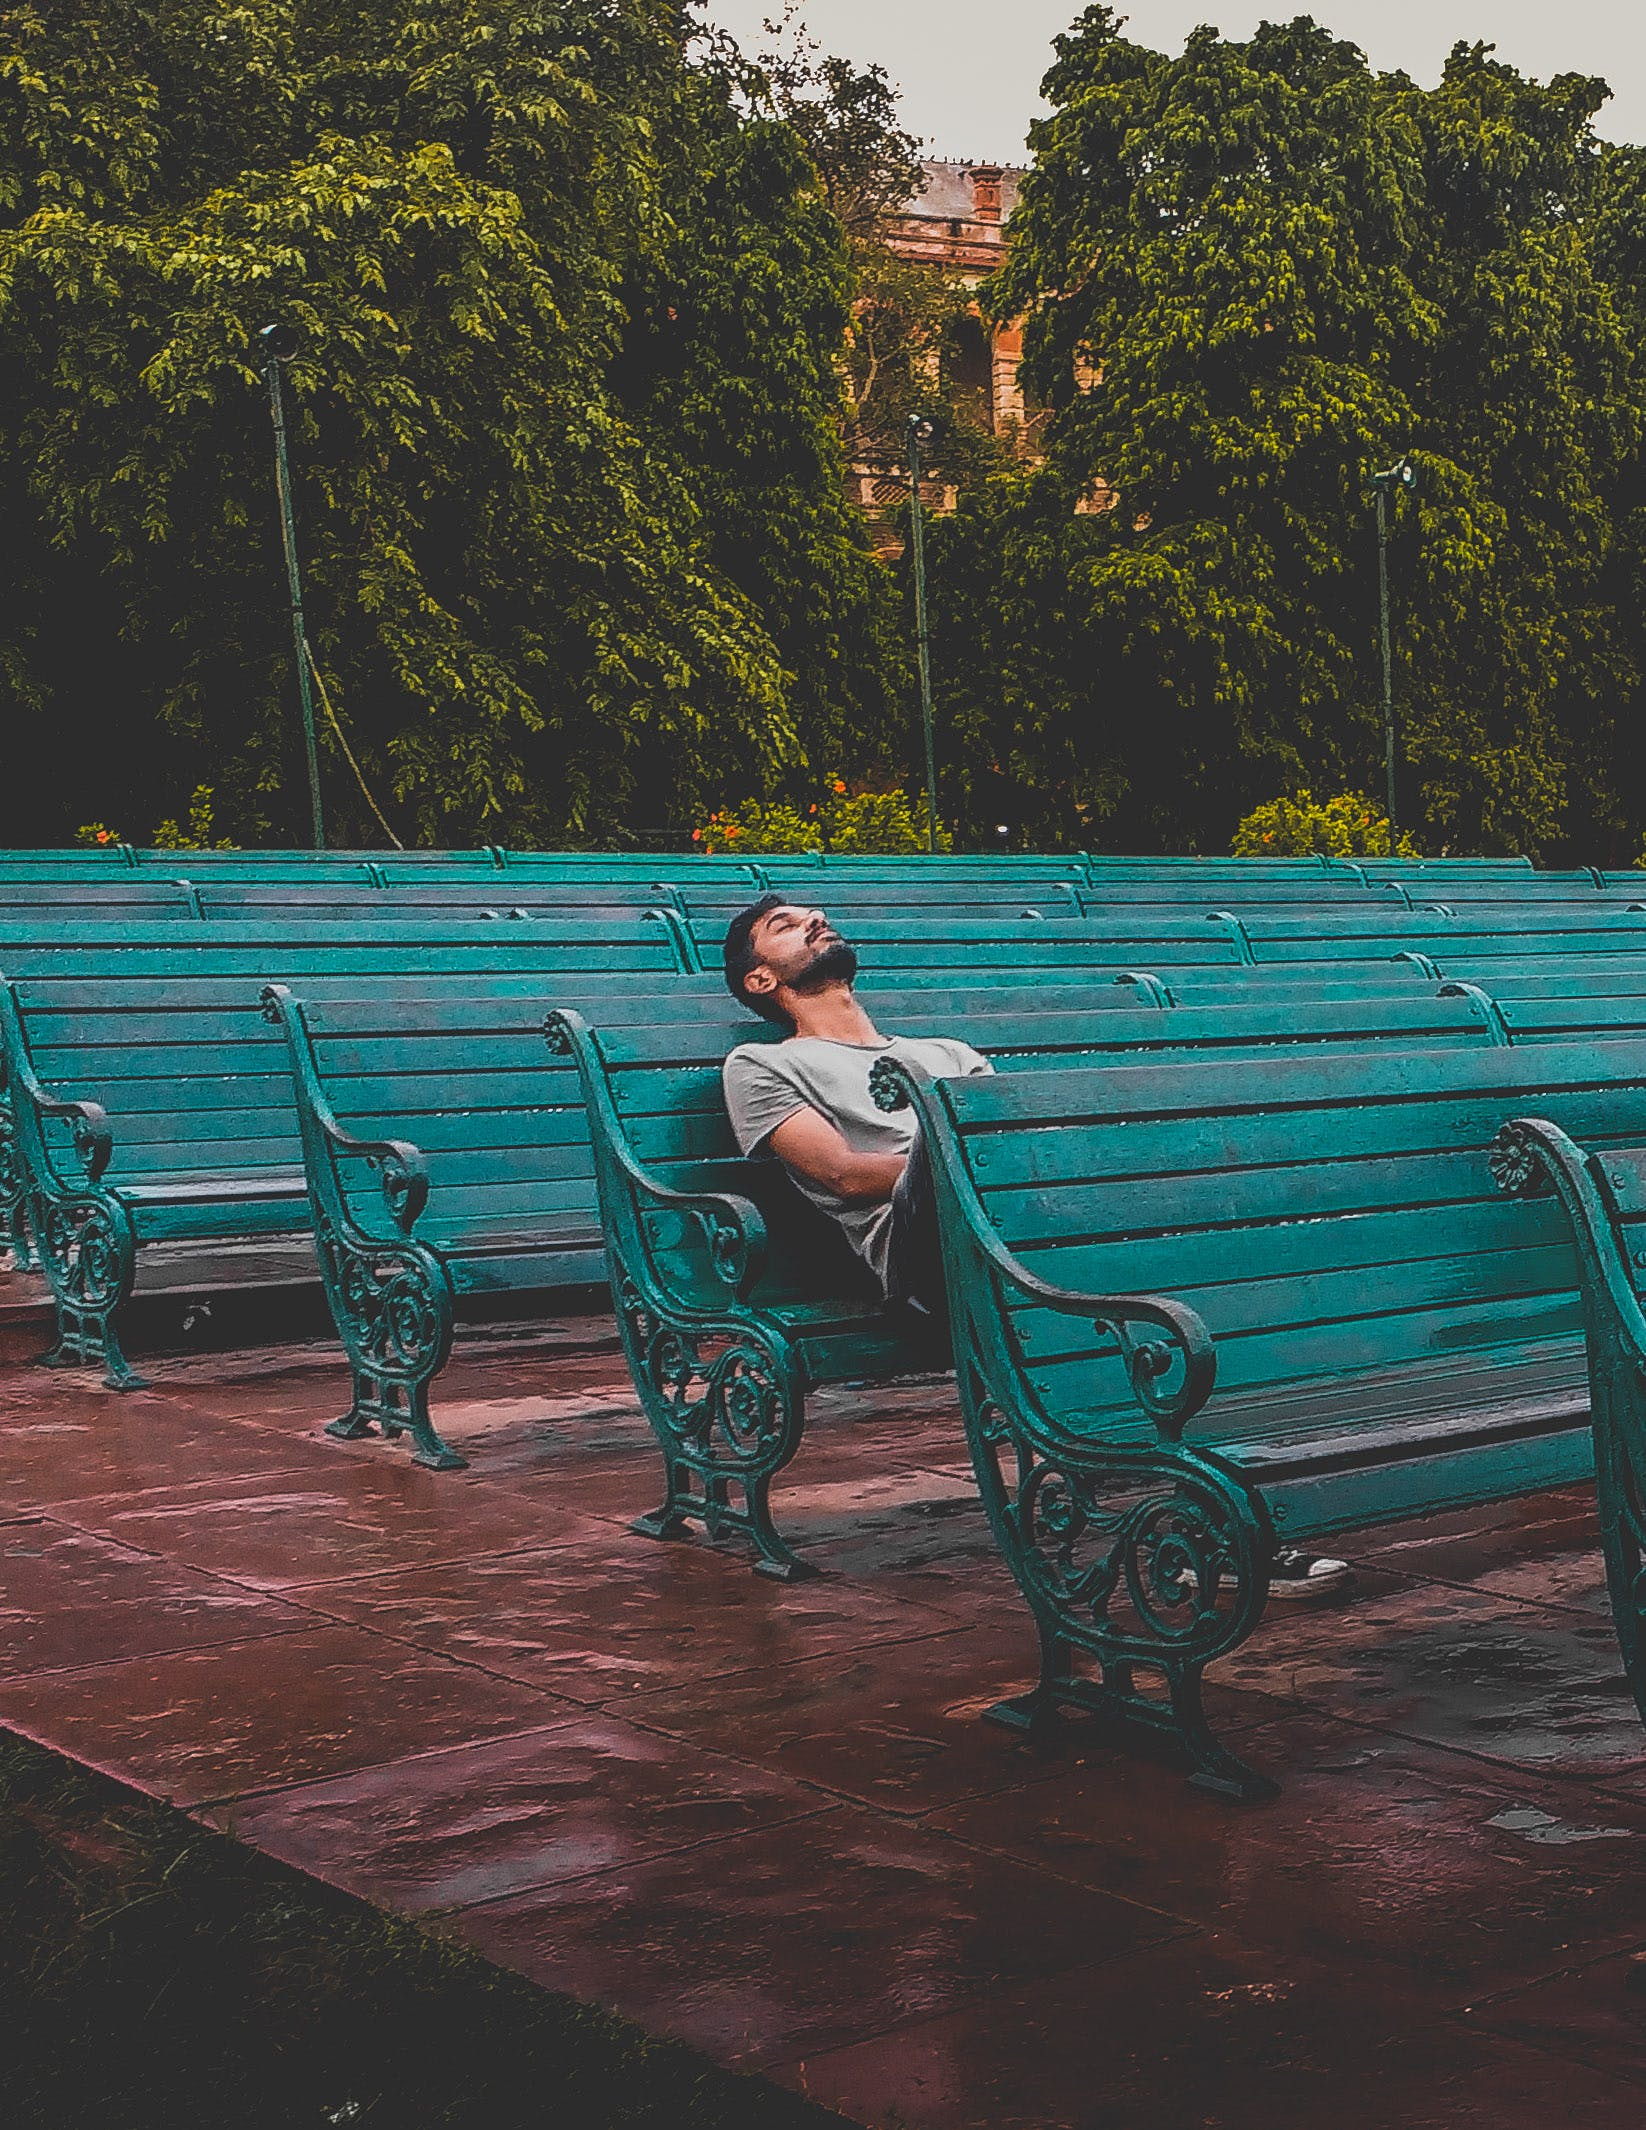 Man Sitting and Closing Eyes on Teal Bench